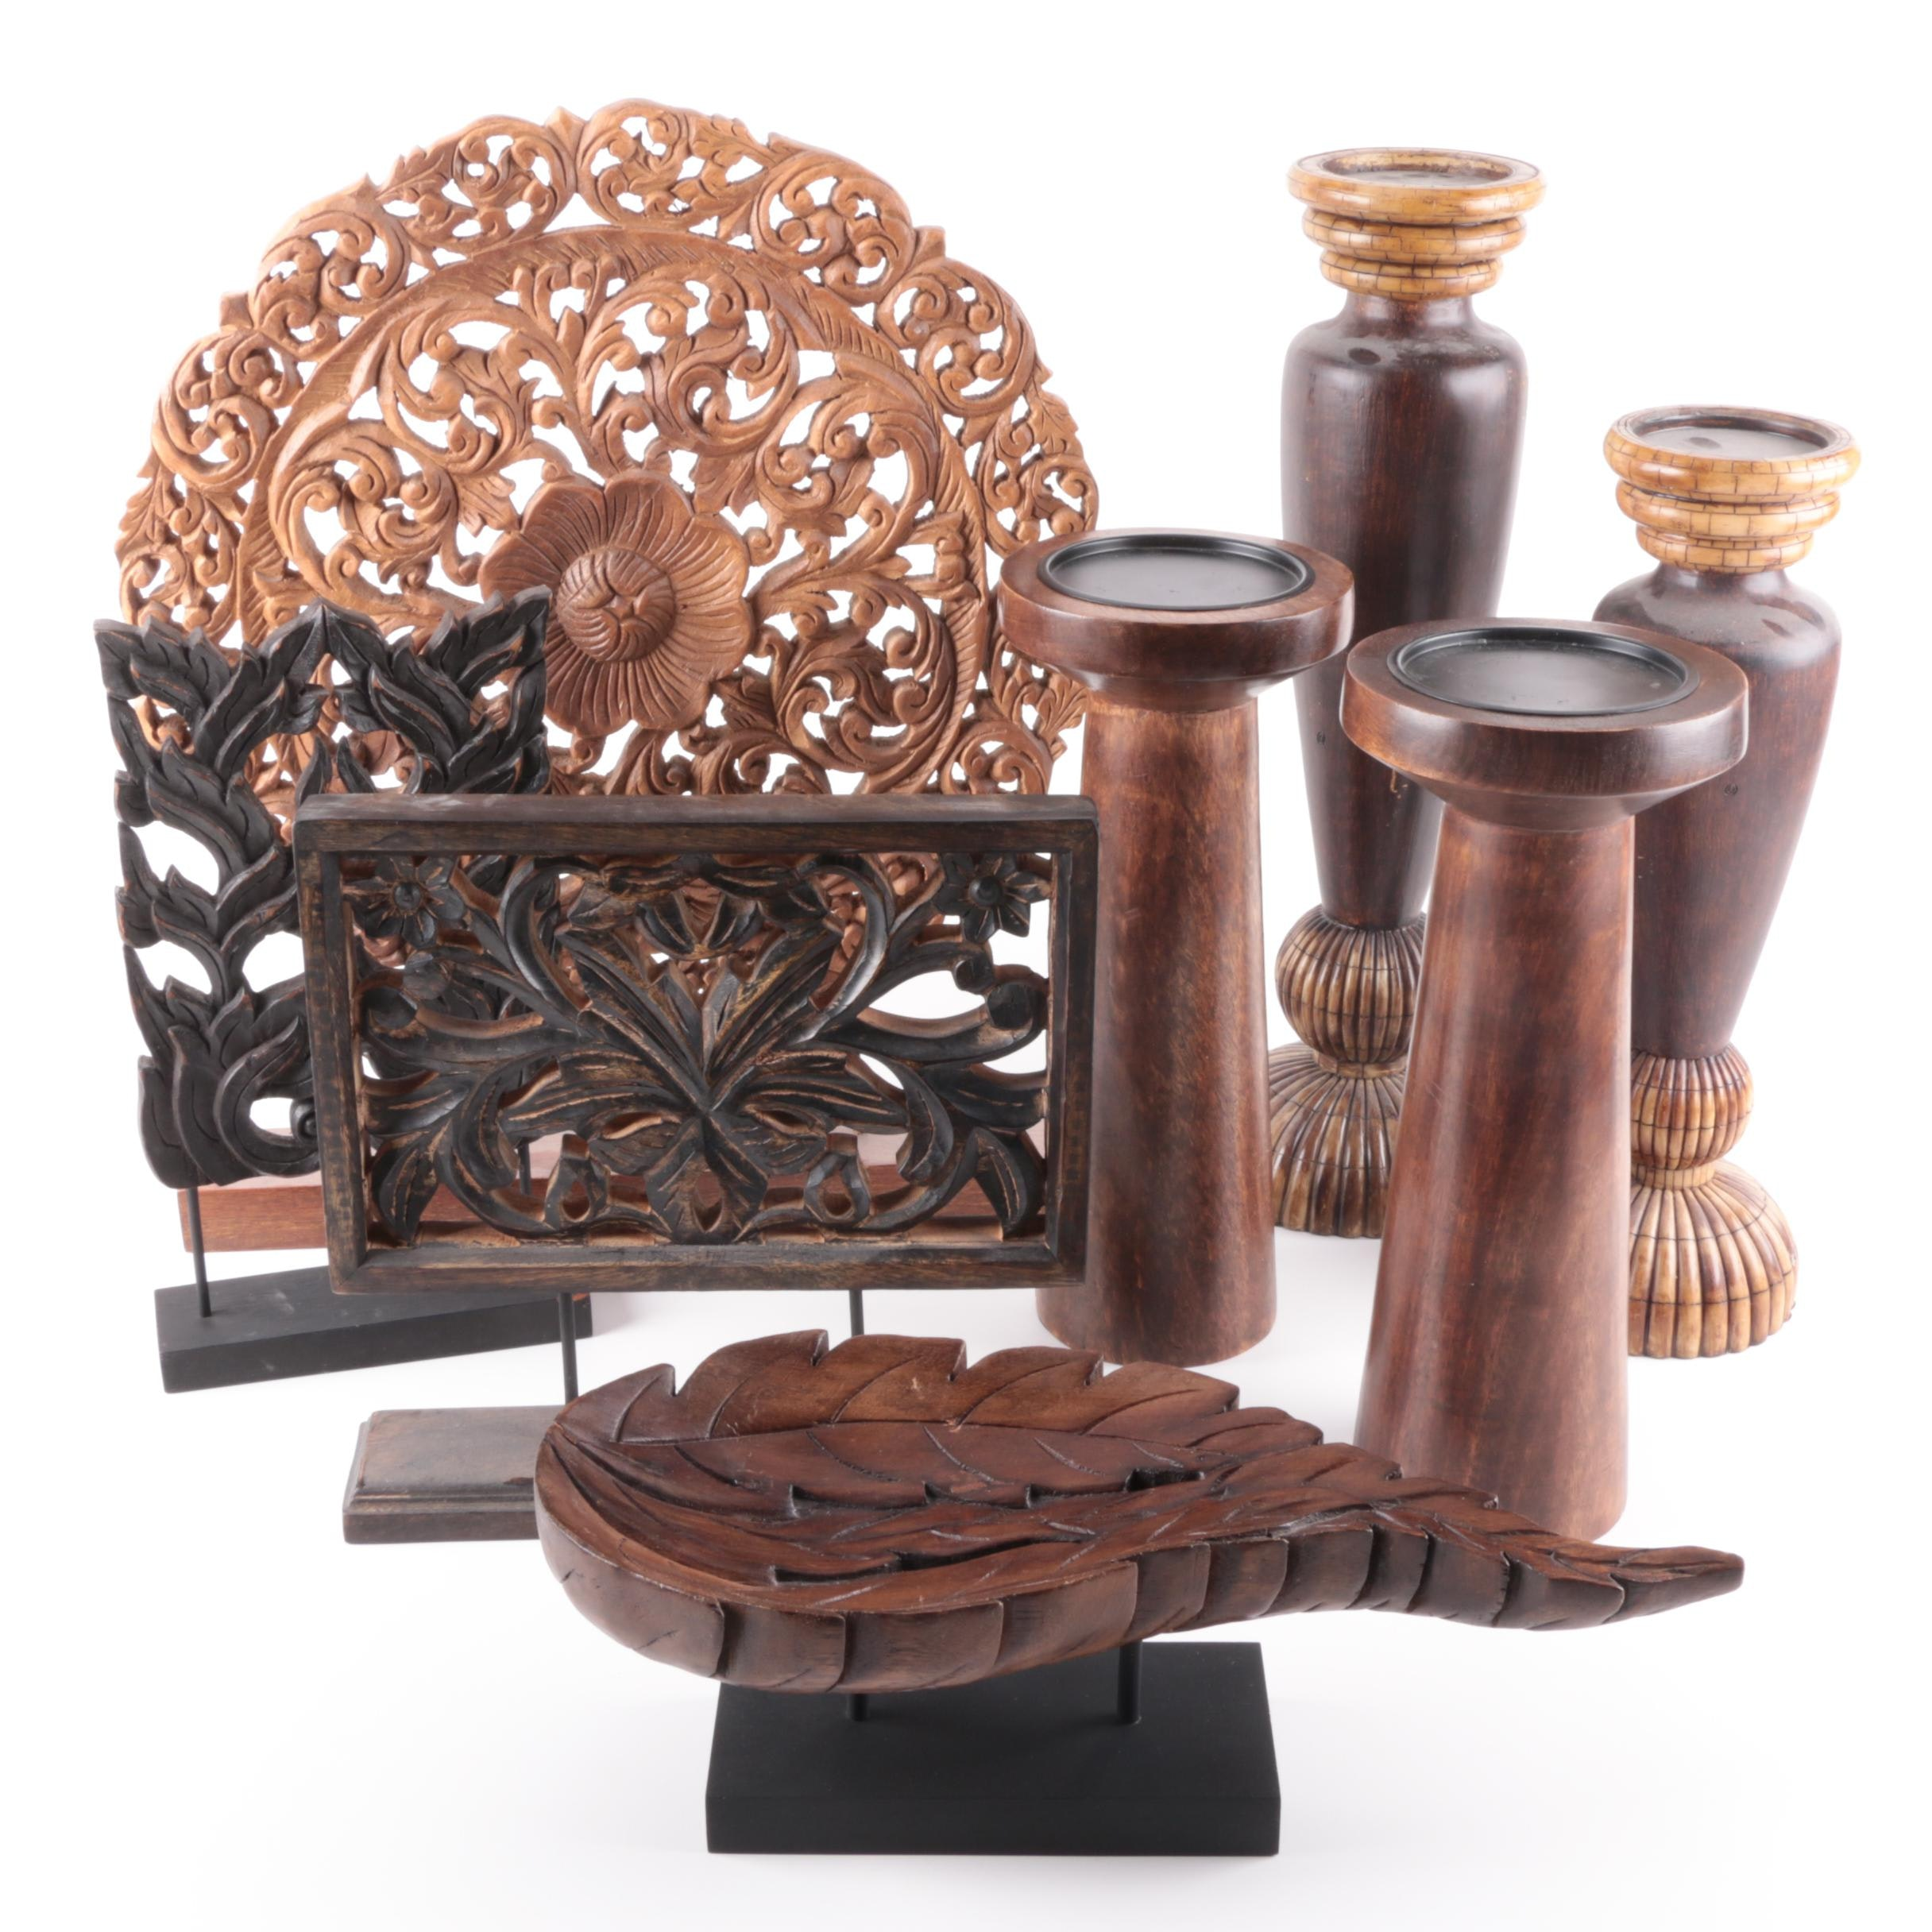 Contemporary Wooden Vases and Decorative Carvings